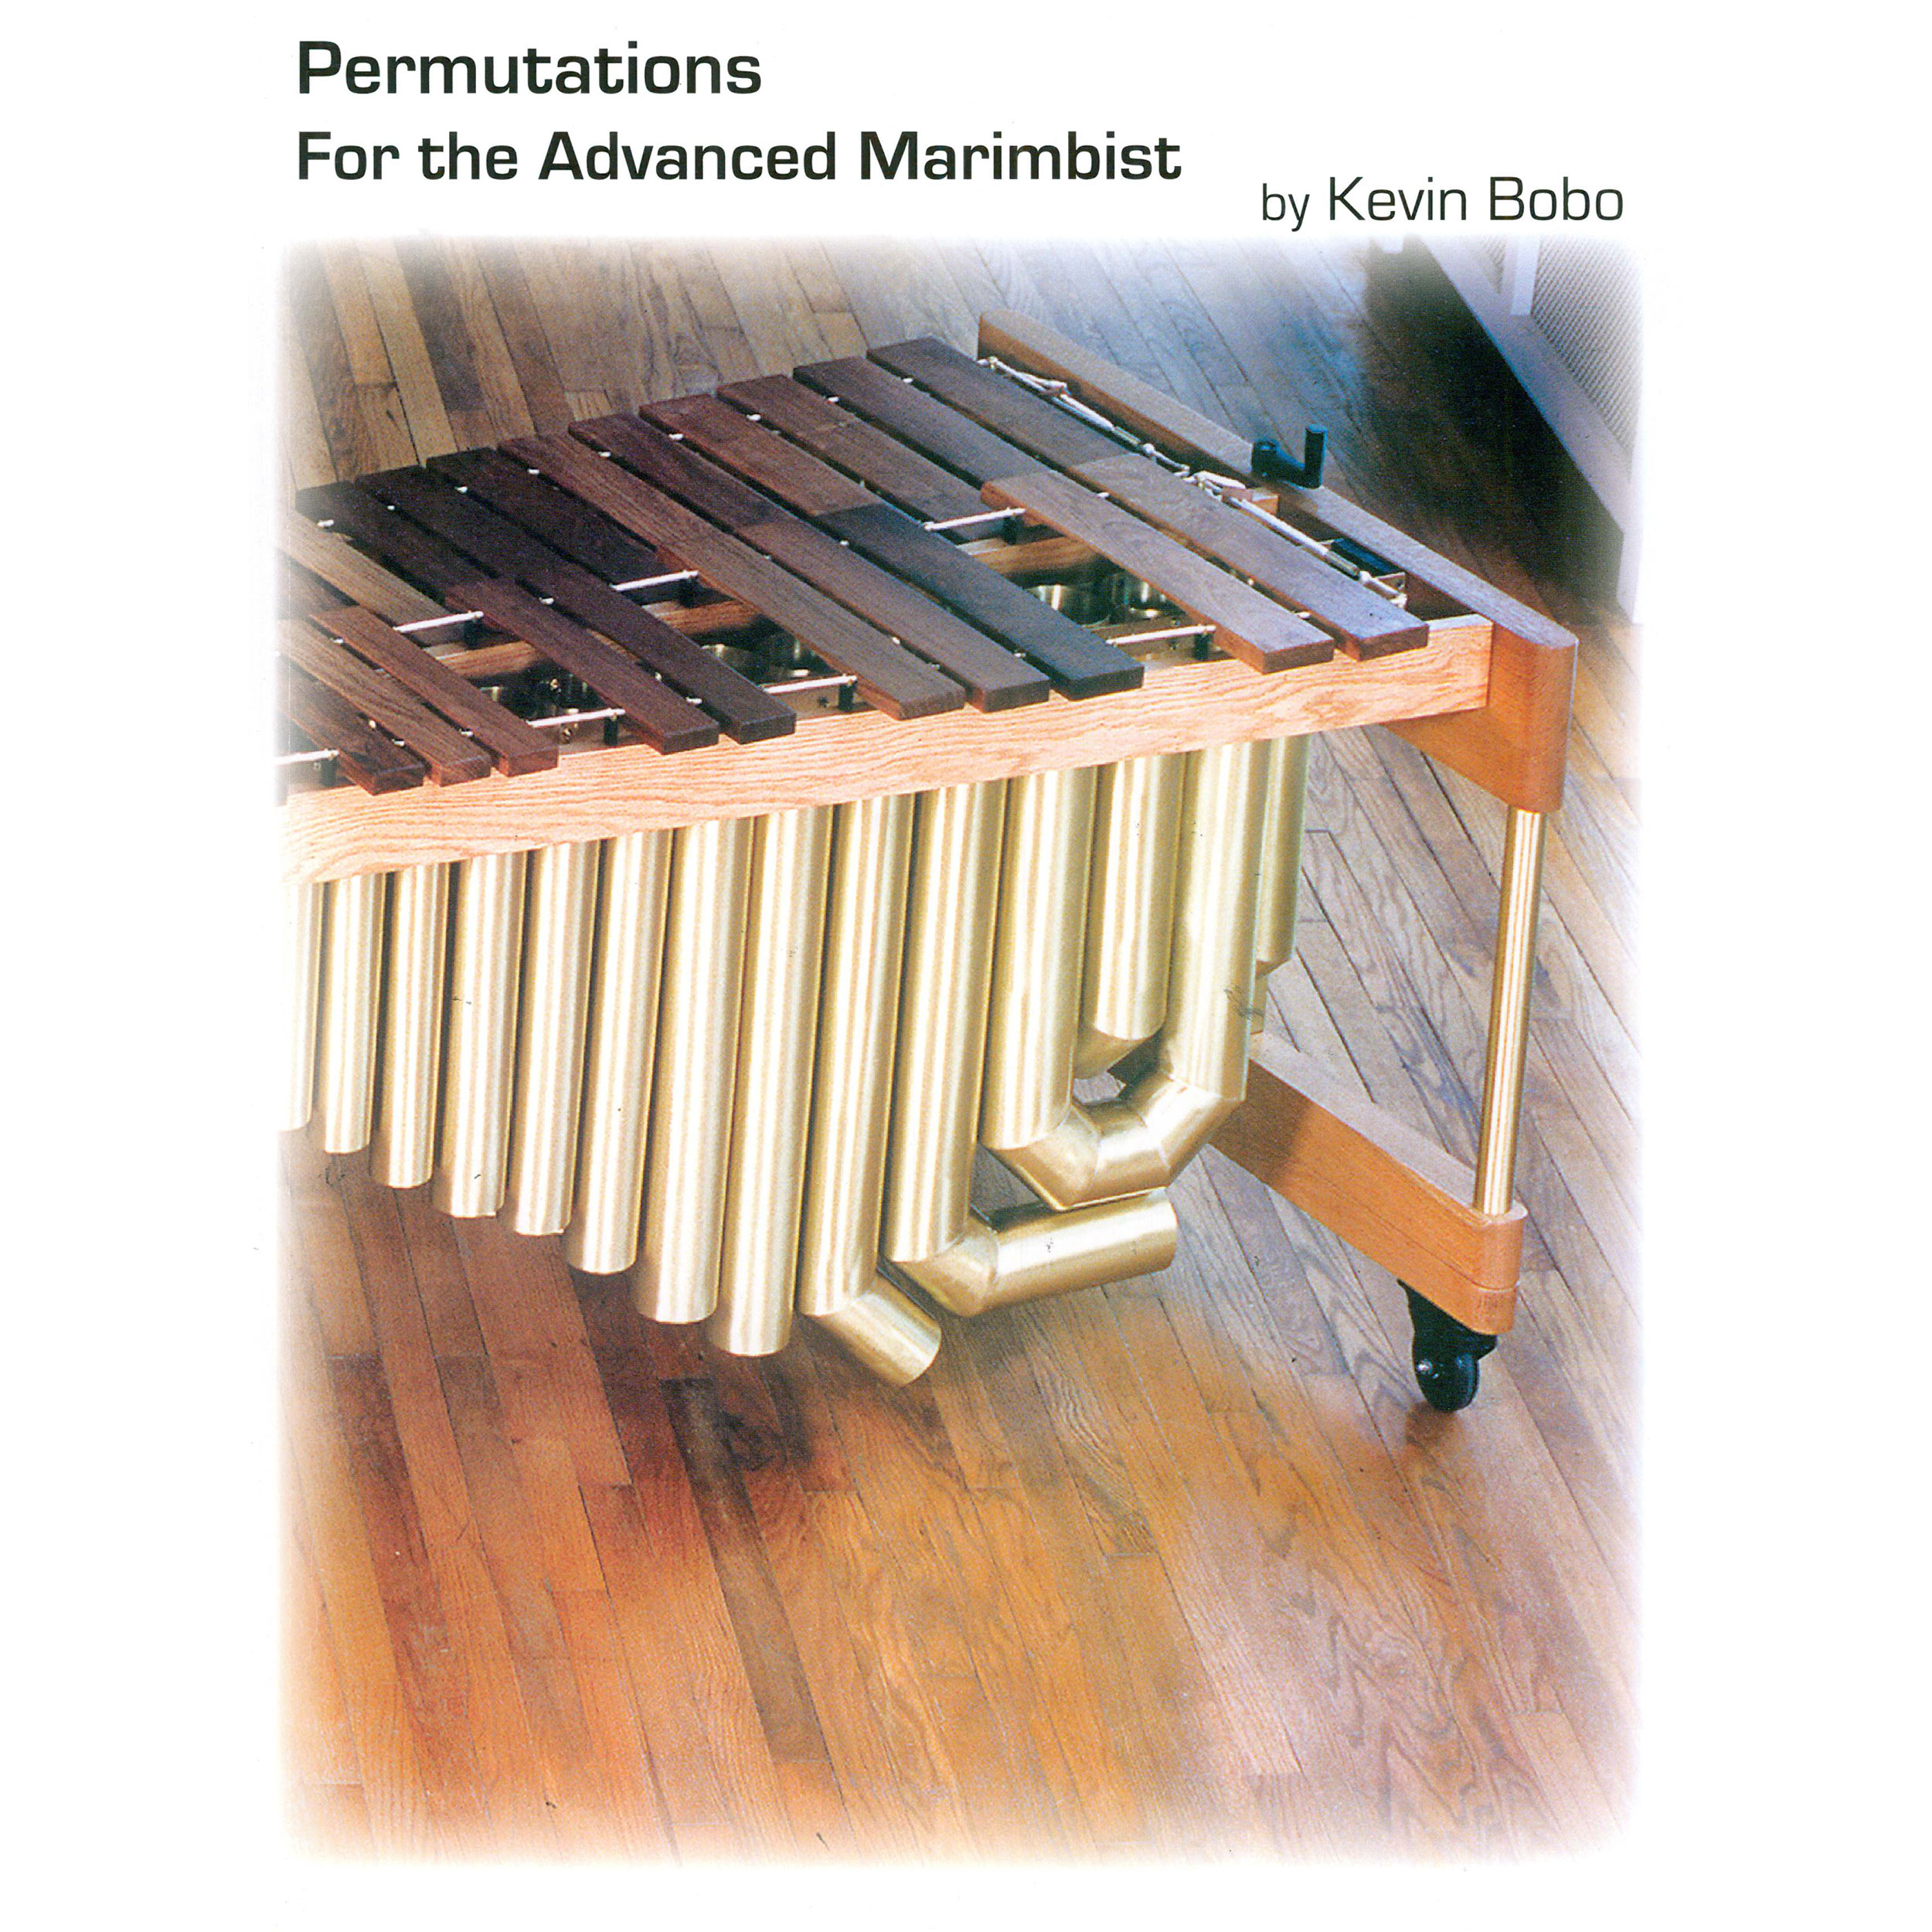 Permutations for the Advanced Marimbist by Kevin Bobo